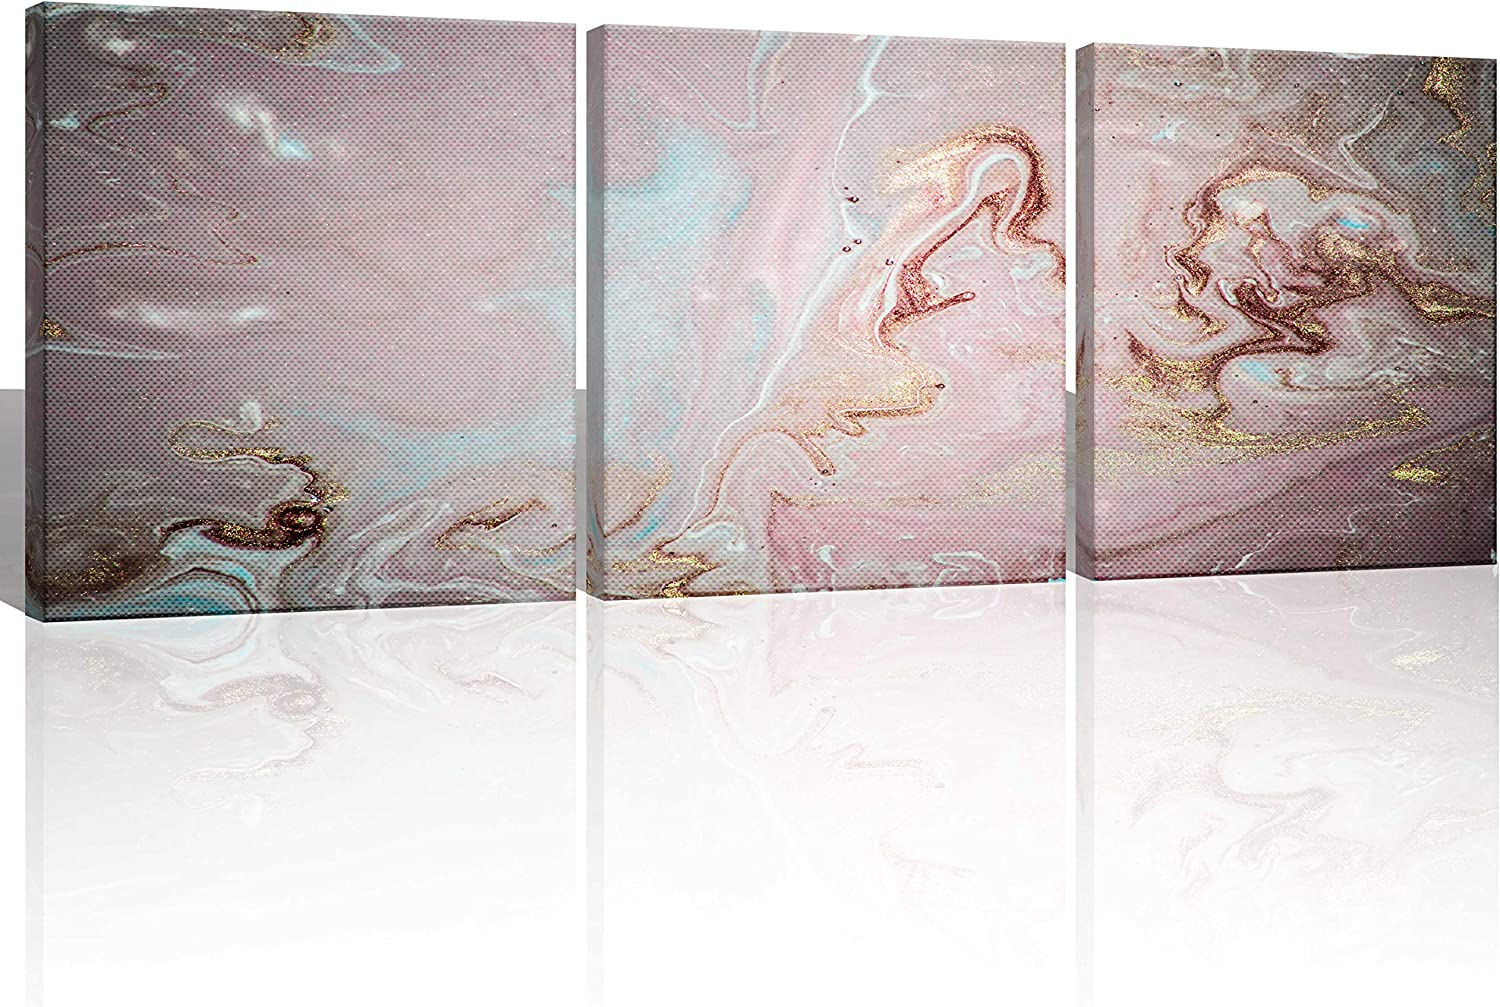 Oiney Gold Pink Abstract Canvs Wall Art 3 Panels Marble Modern Wall Art Decor for Home,Office,Hotel